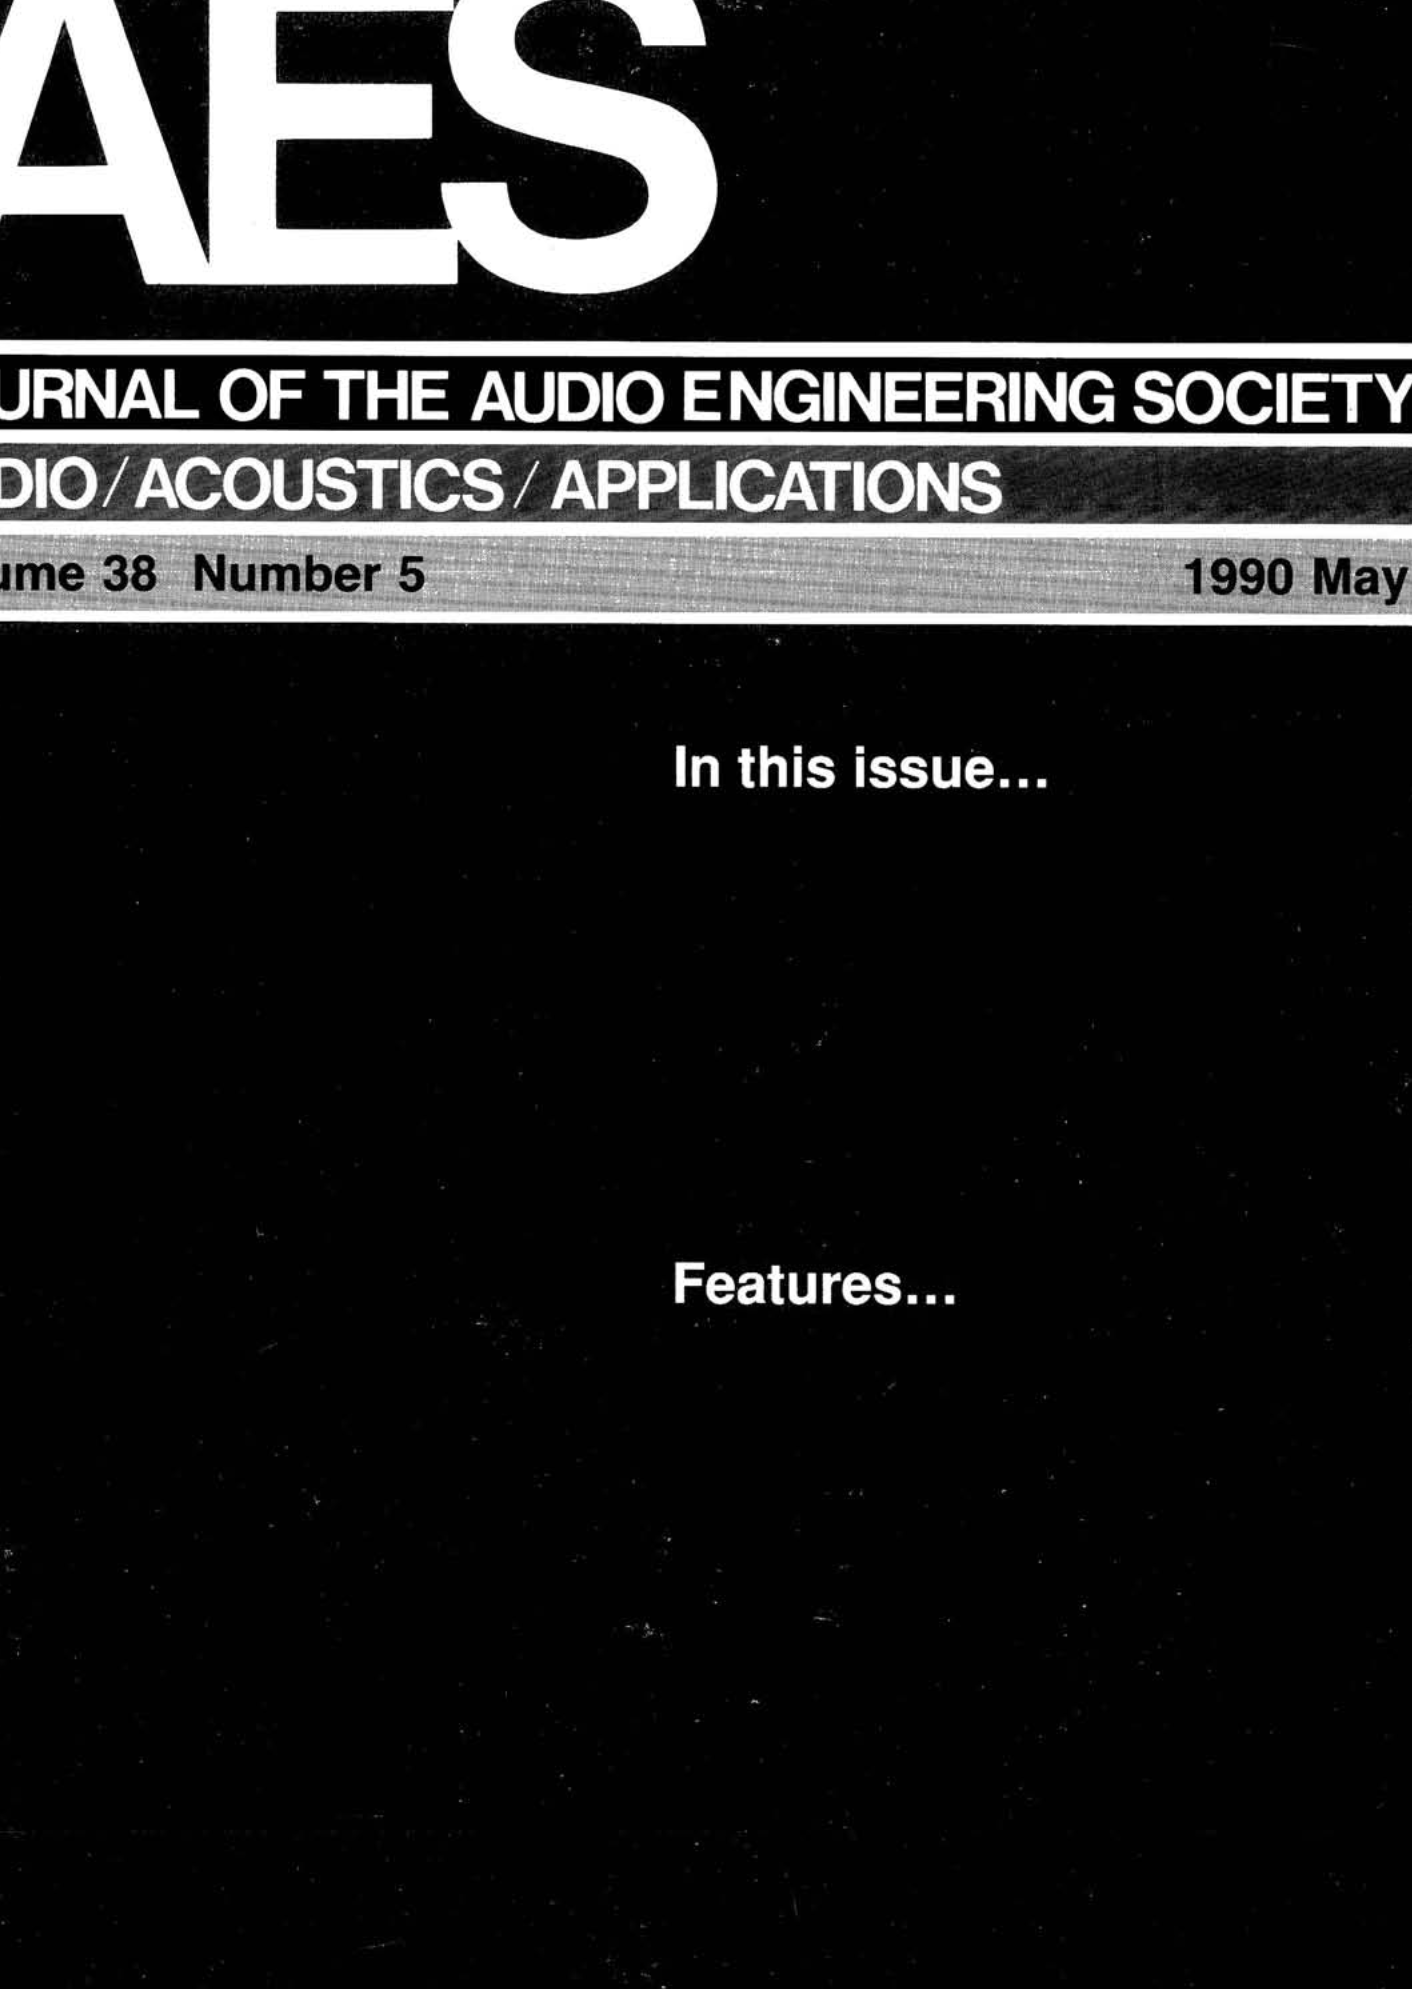 AES E Library Plete Journal Volume 38 Issue 5